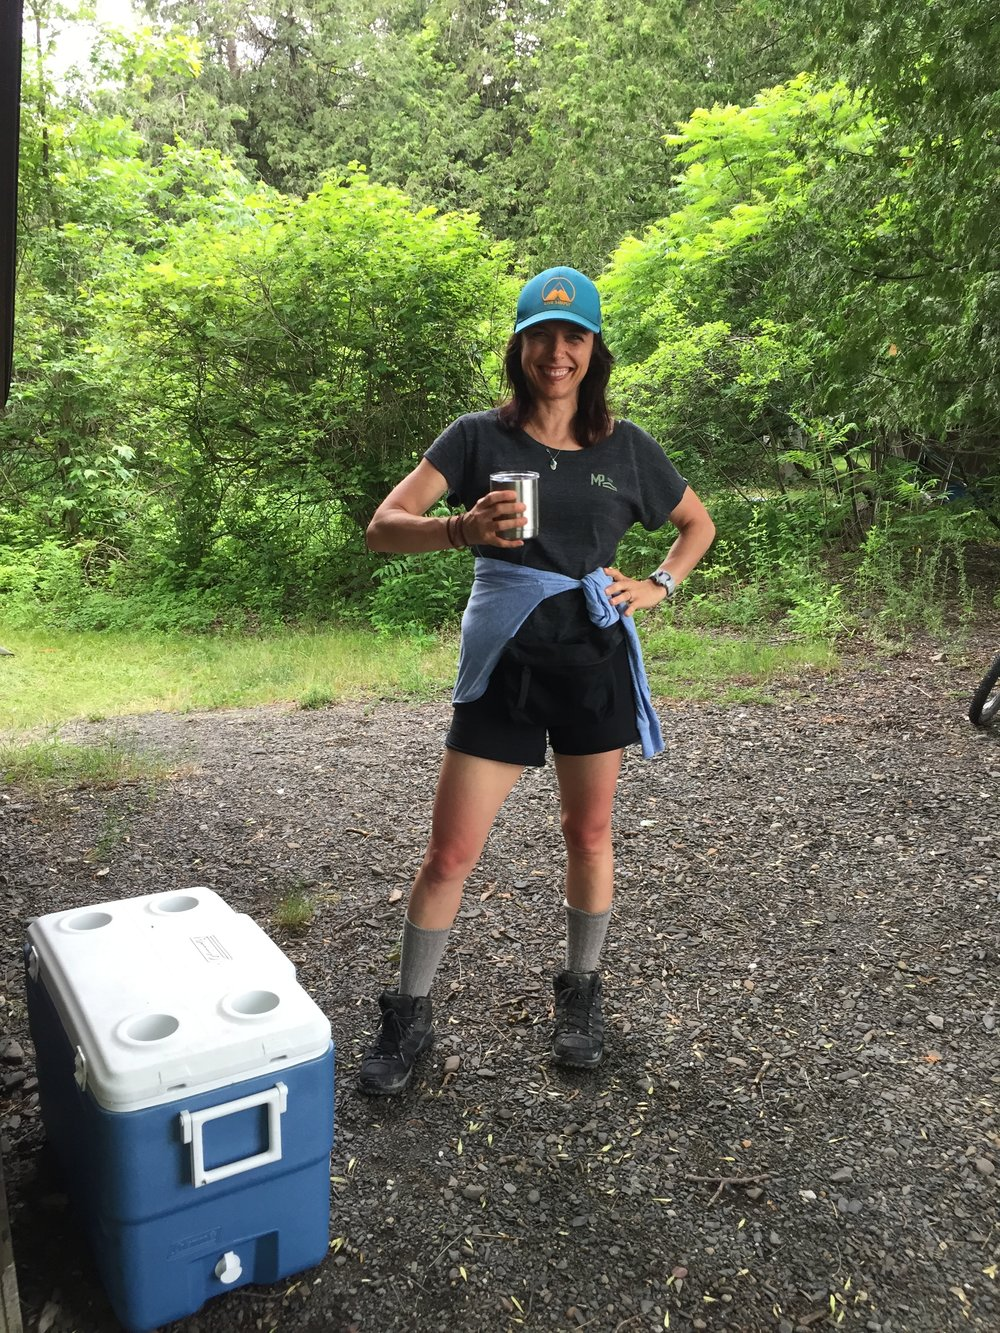 Pictured, top to bottom: Happy Camper hat, Happy Camper smile, Happy Camper cup, sunburnt thighs, wool socks (remembered!), hikers borrowed from a 10-year-old boy.